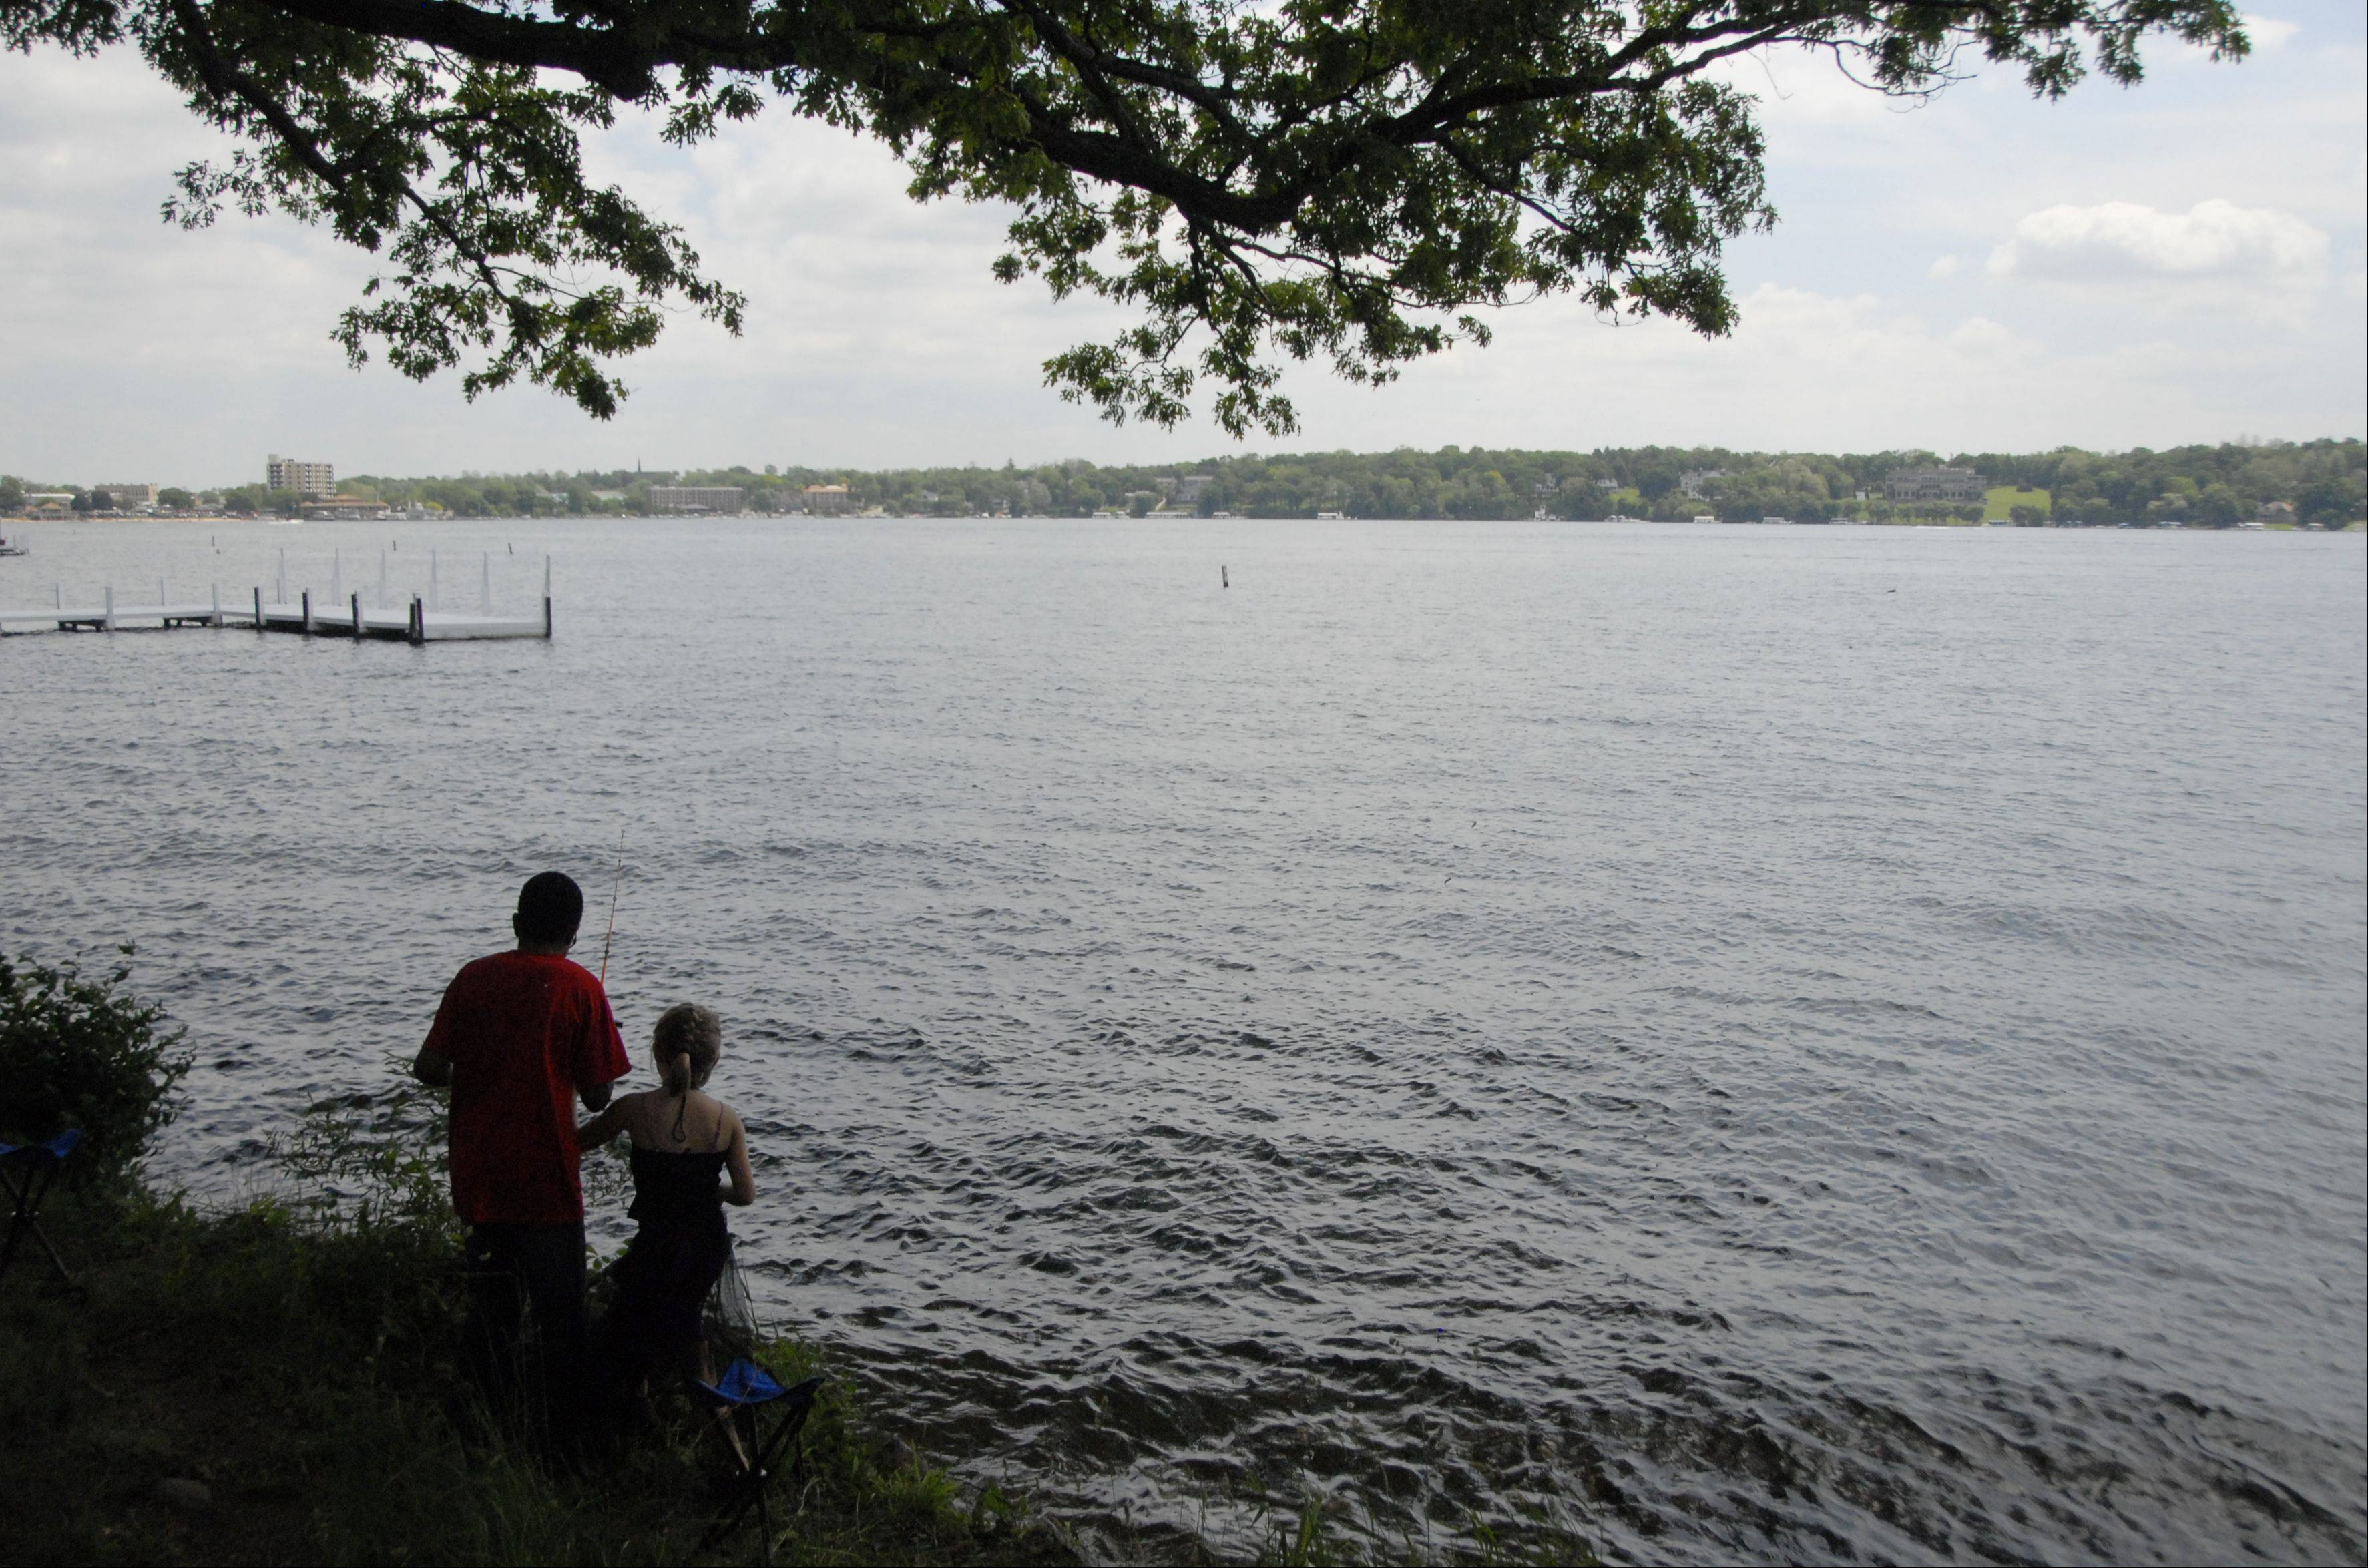 Royal Family Kids Camp campers fish along the lake at their camp in Wisconsin.